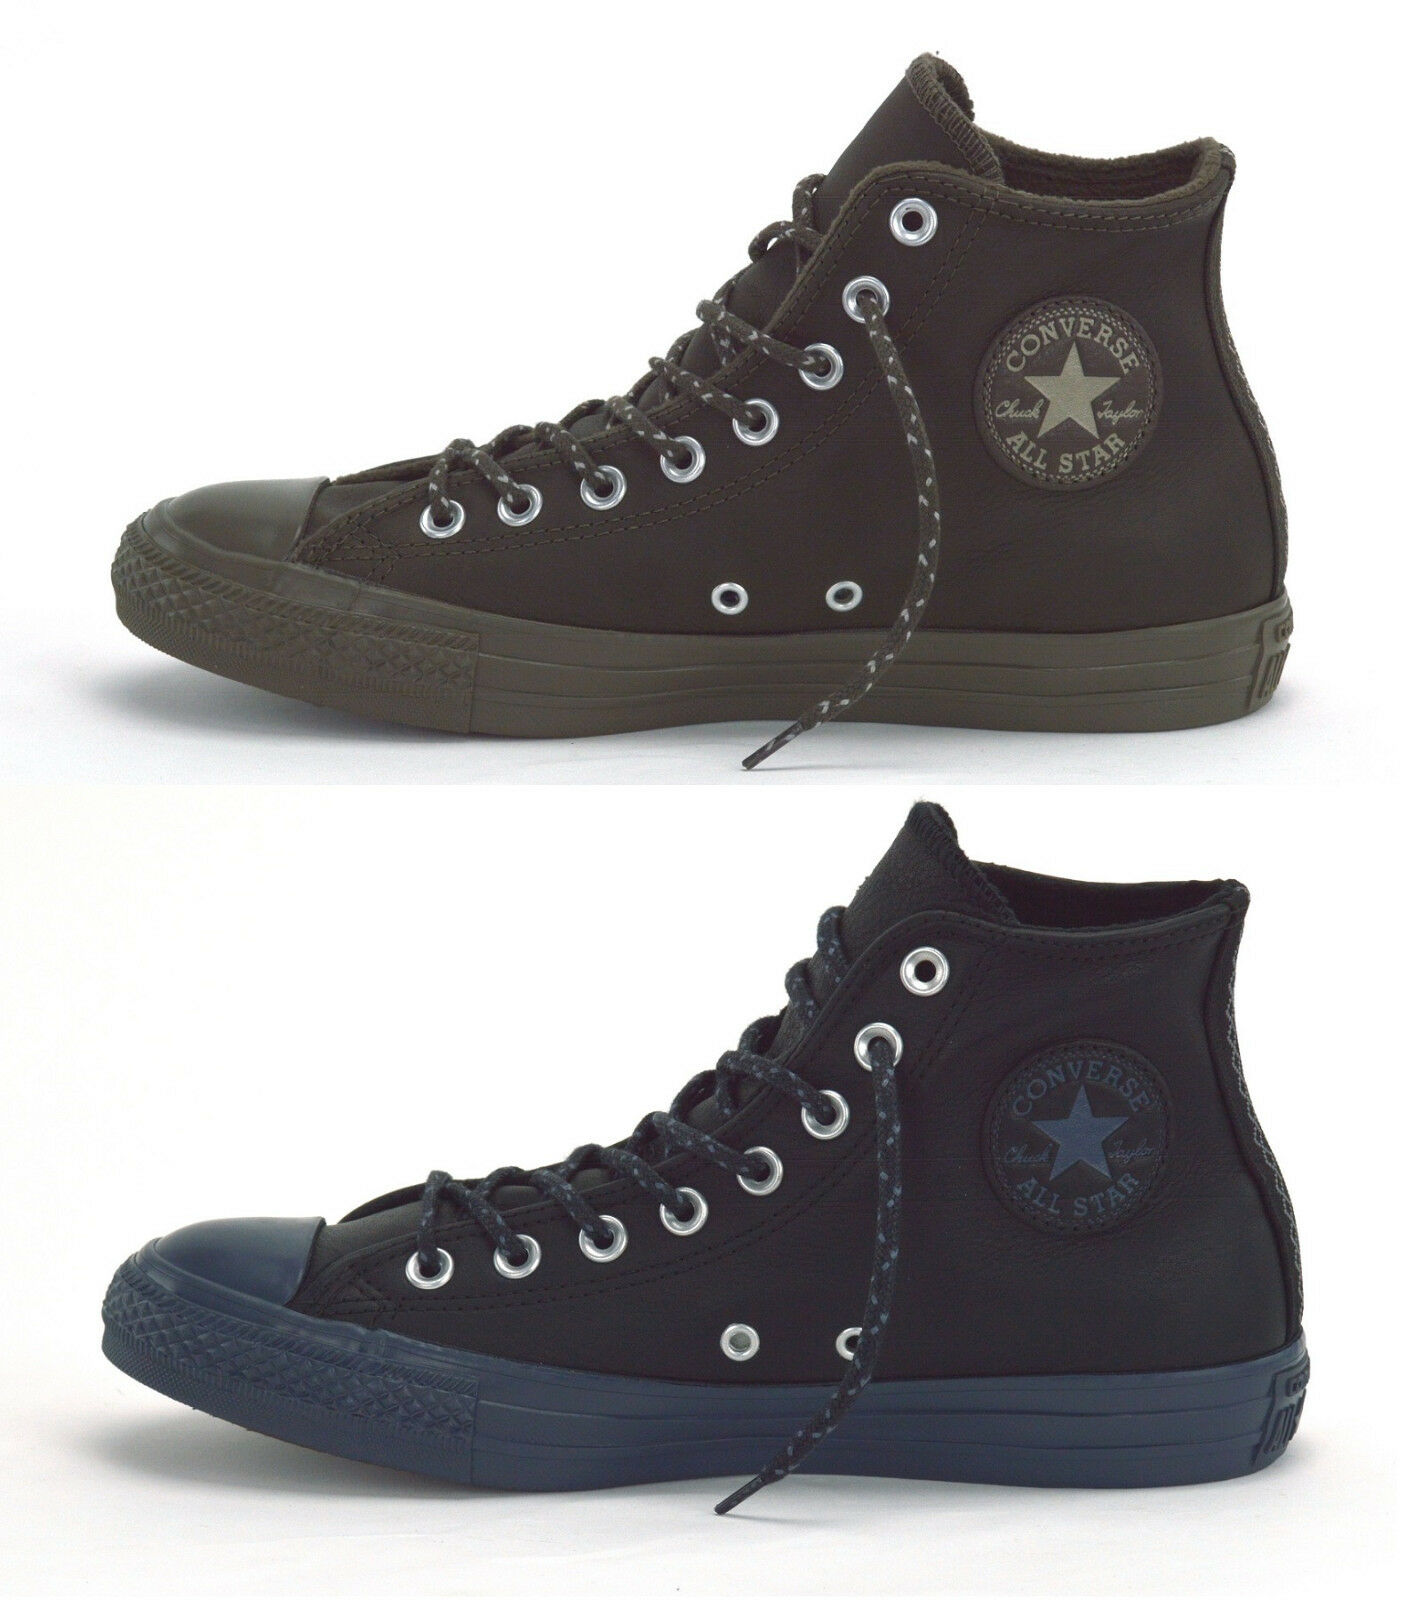 CONVERSE CHUCK TAYLOR ALL STAR HI LEATHER + THERMAL - MENS SNEAKERS - BRAND NEW